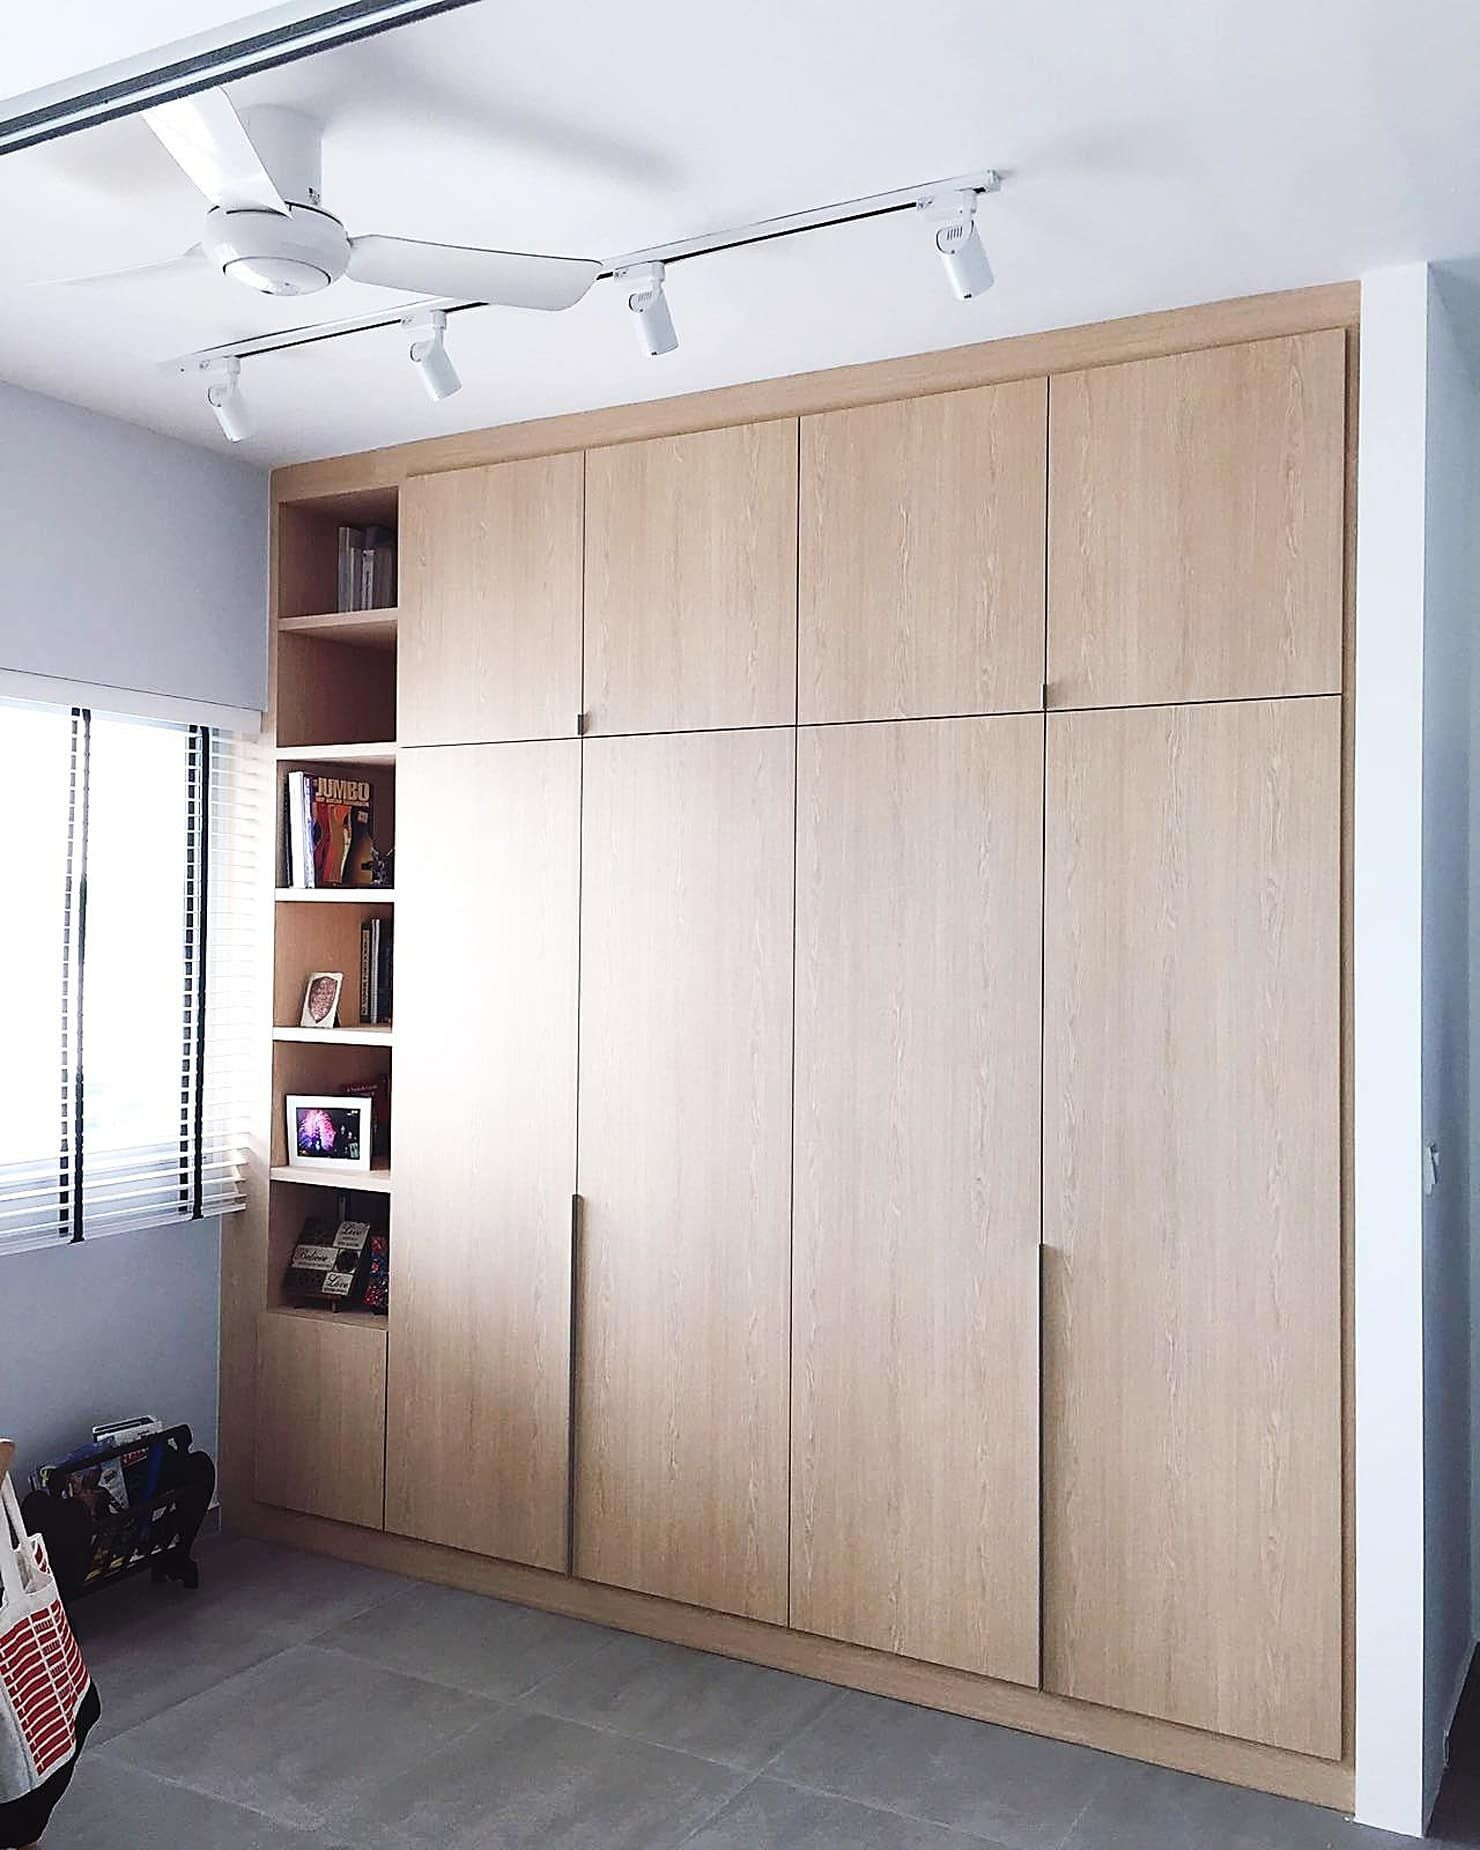 Full Height Wardrobe With Open Cabinet Scandinavian Style Dressing Room By Singapore Carpentry Pte Ltd Scandinavian Homify In 2020 Small Dressing Rooms Dressing Room Decor Scandinavian Interior Bedroom